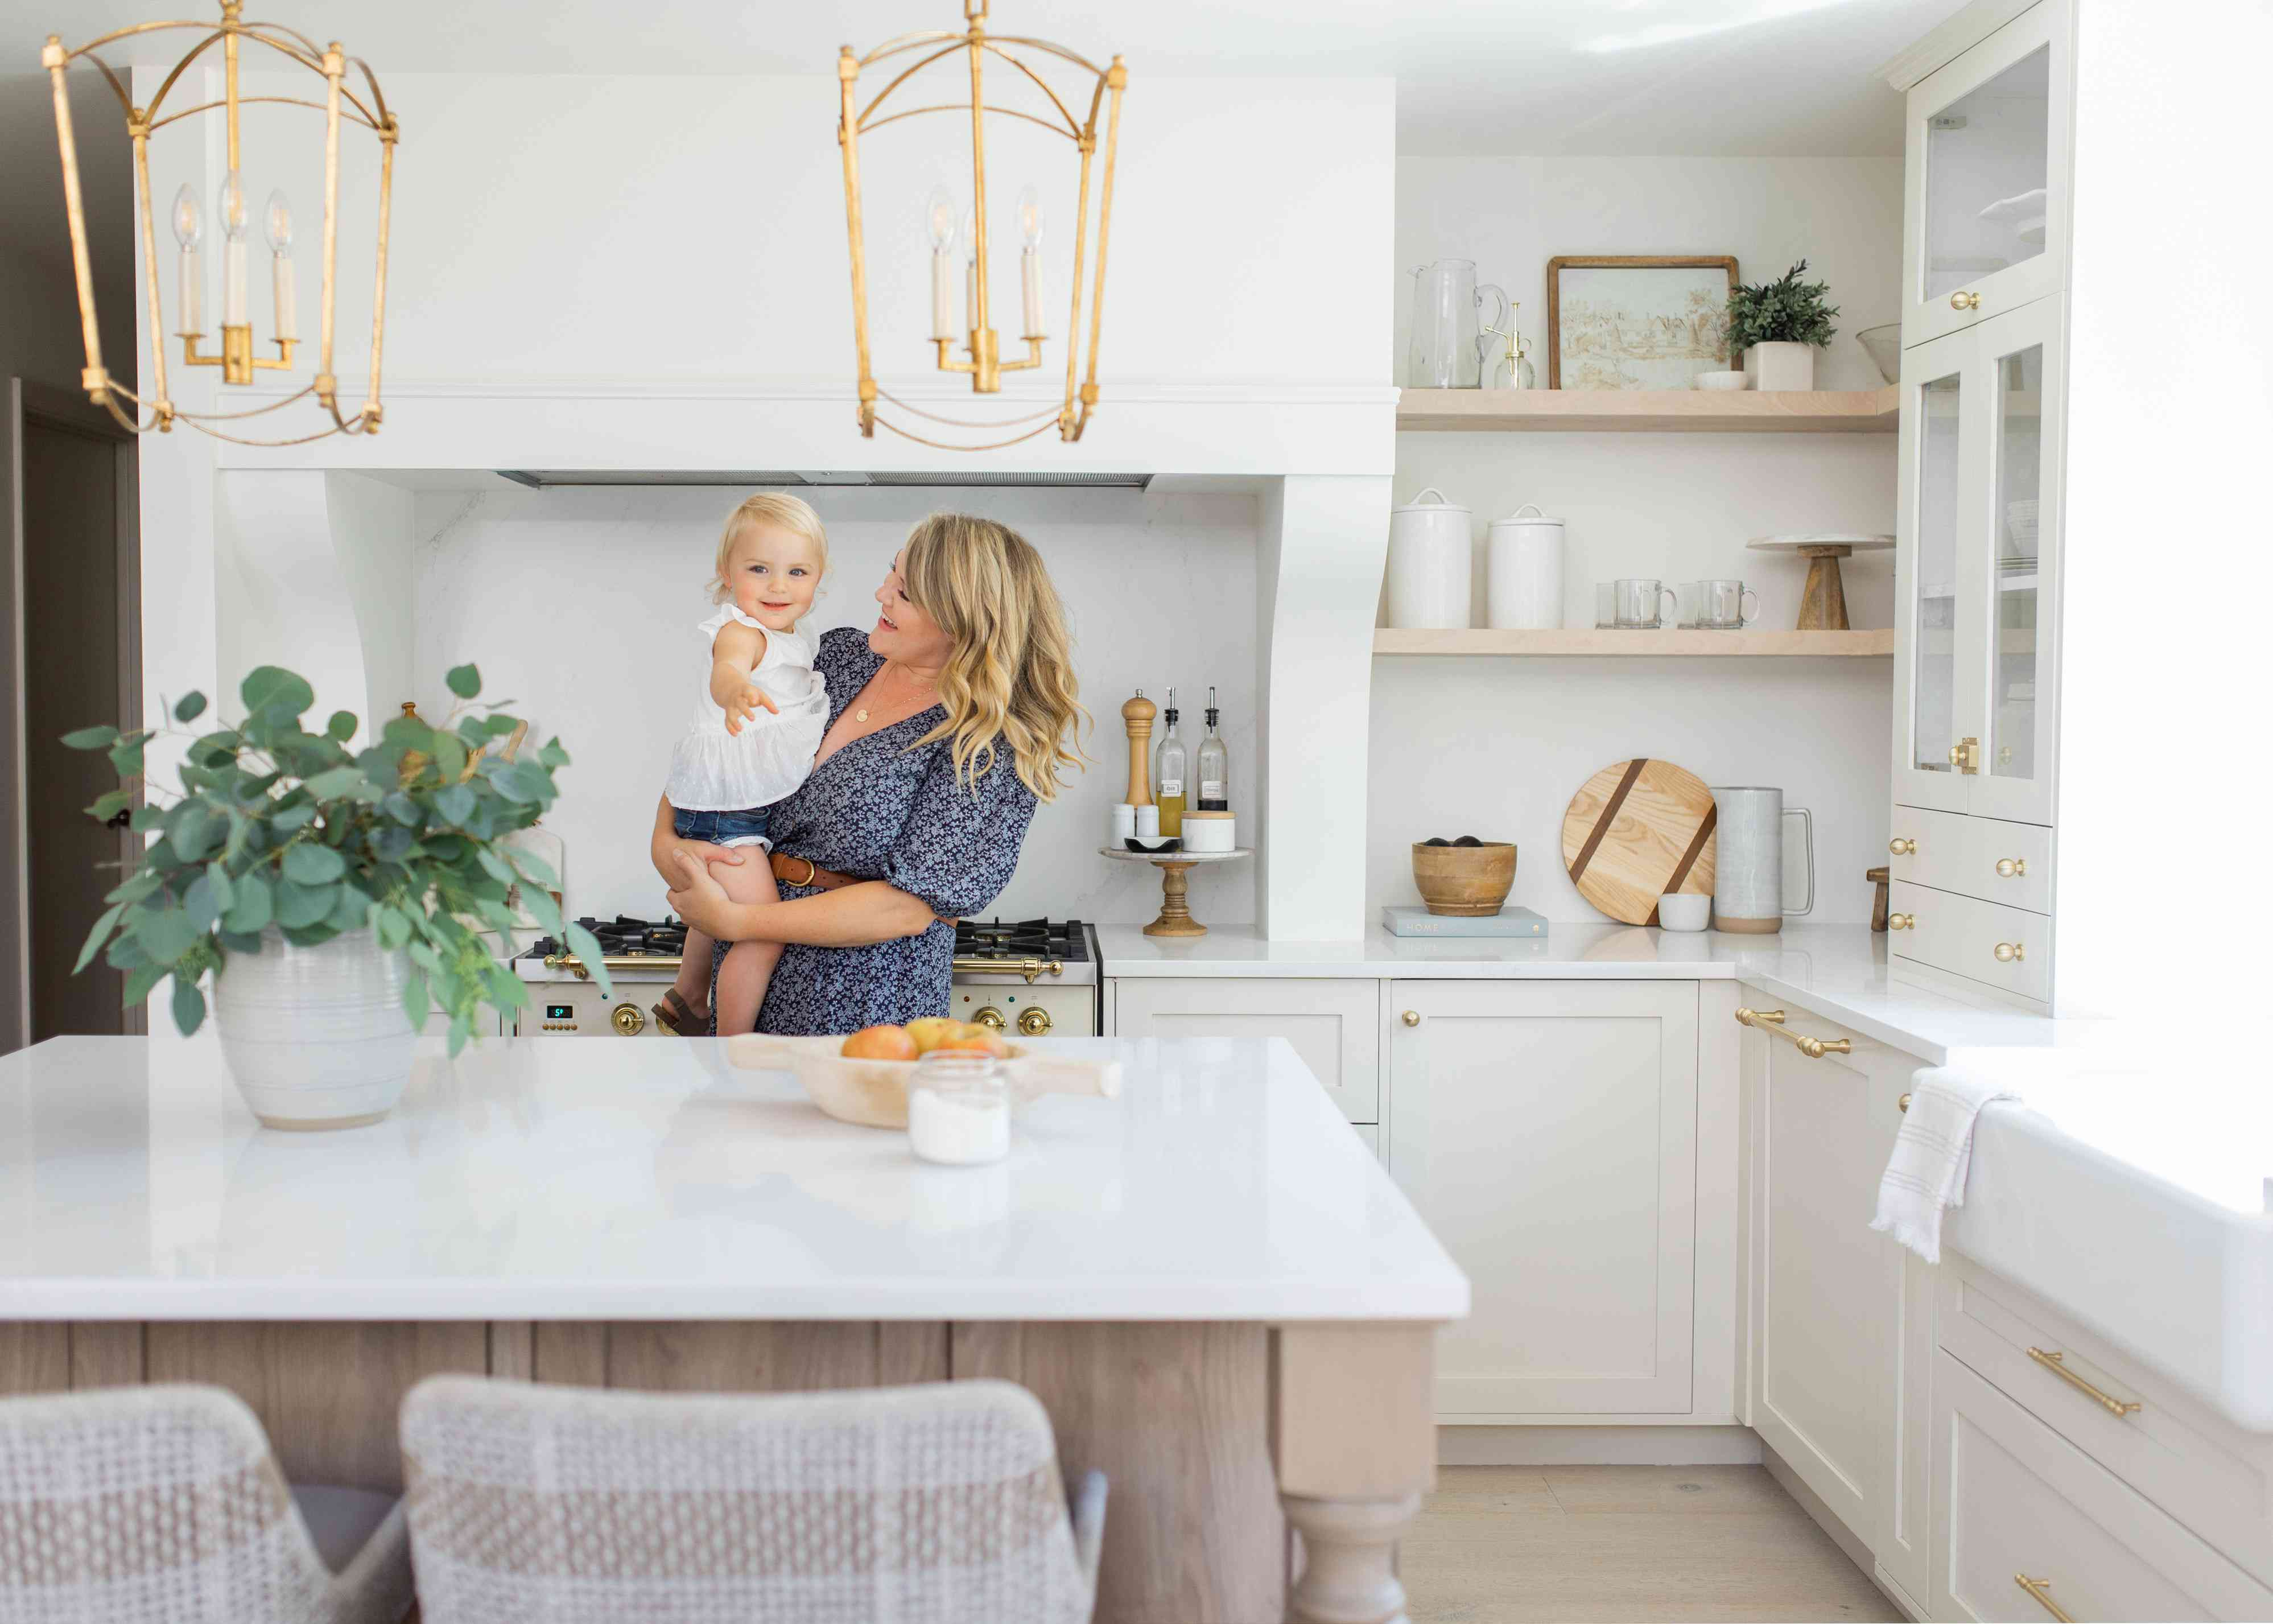 Jones and her baby in the kitchen.